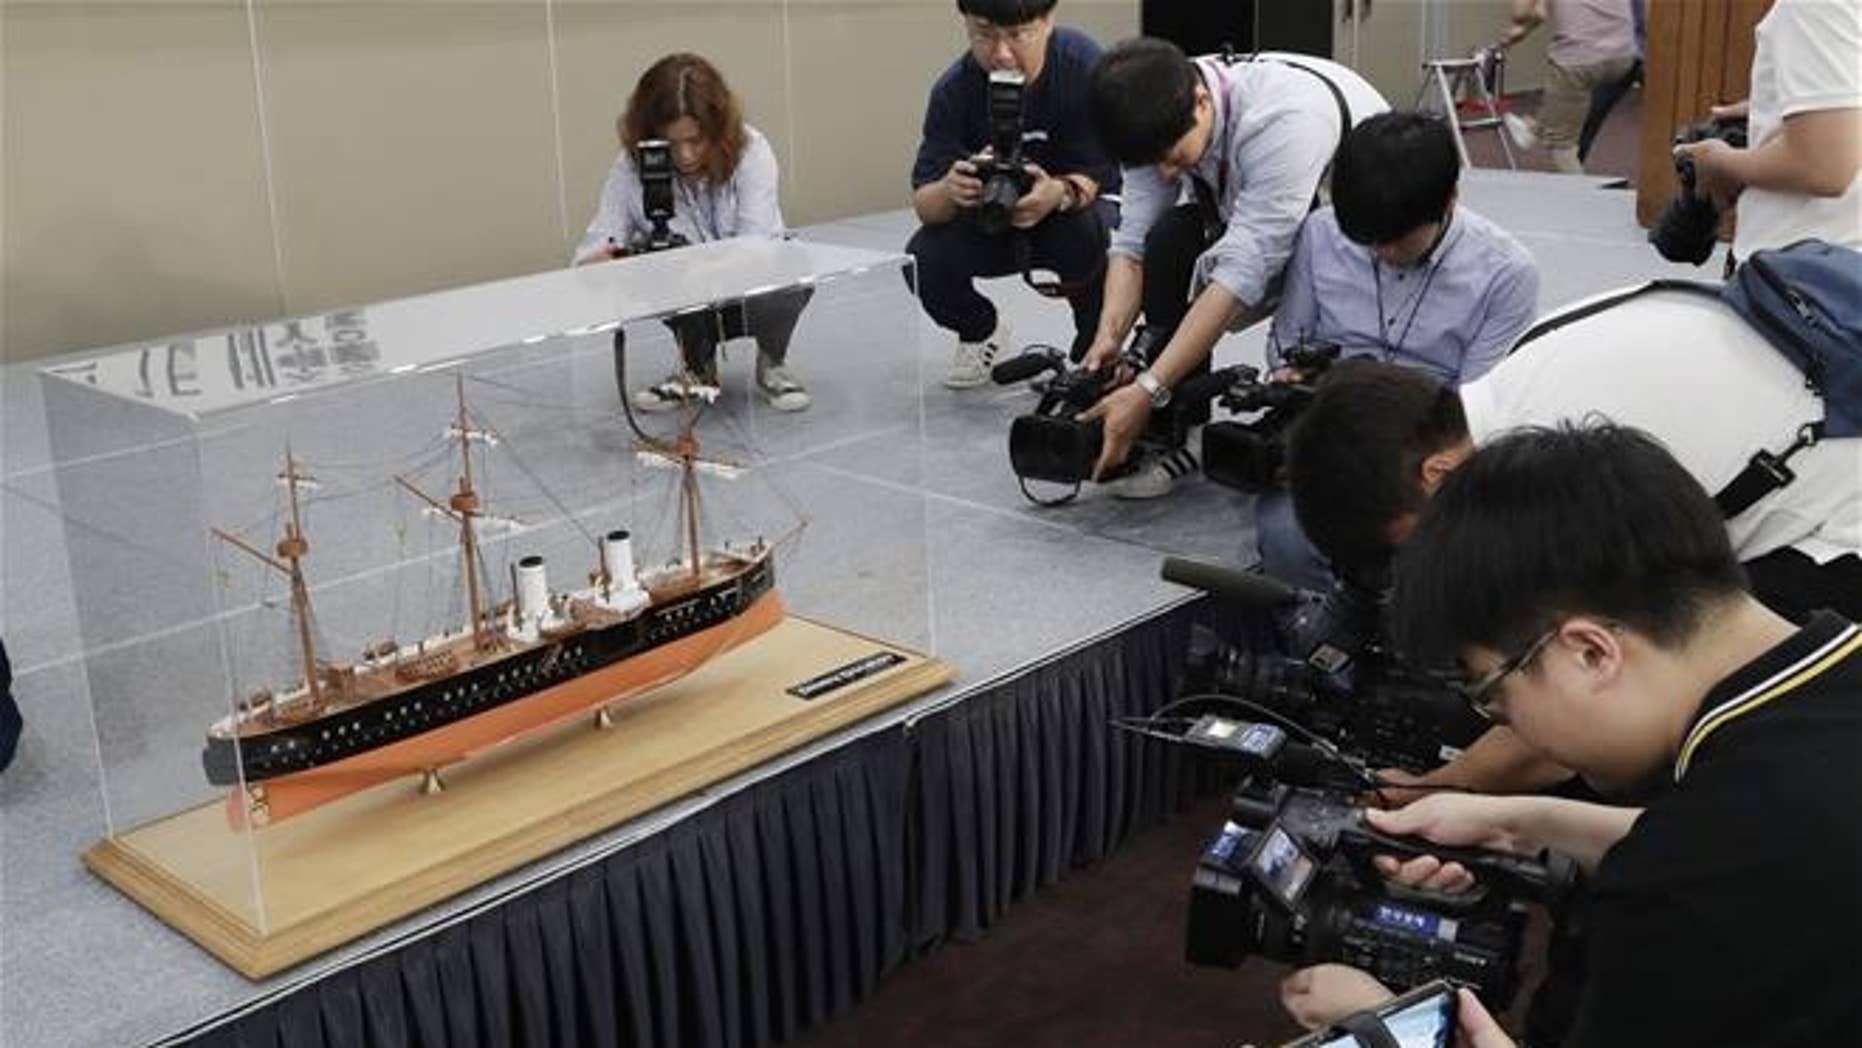 A scale model of the Russian warship Dmitrii Donskoi is surrounded by the media before a news conference in Seoul, South Korea, Thursday, July 26, 2018.